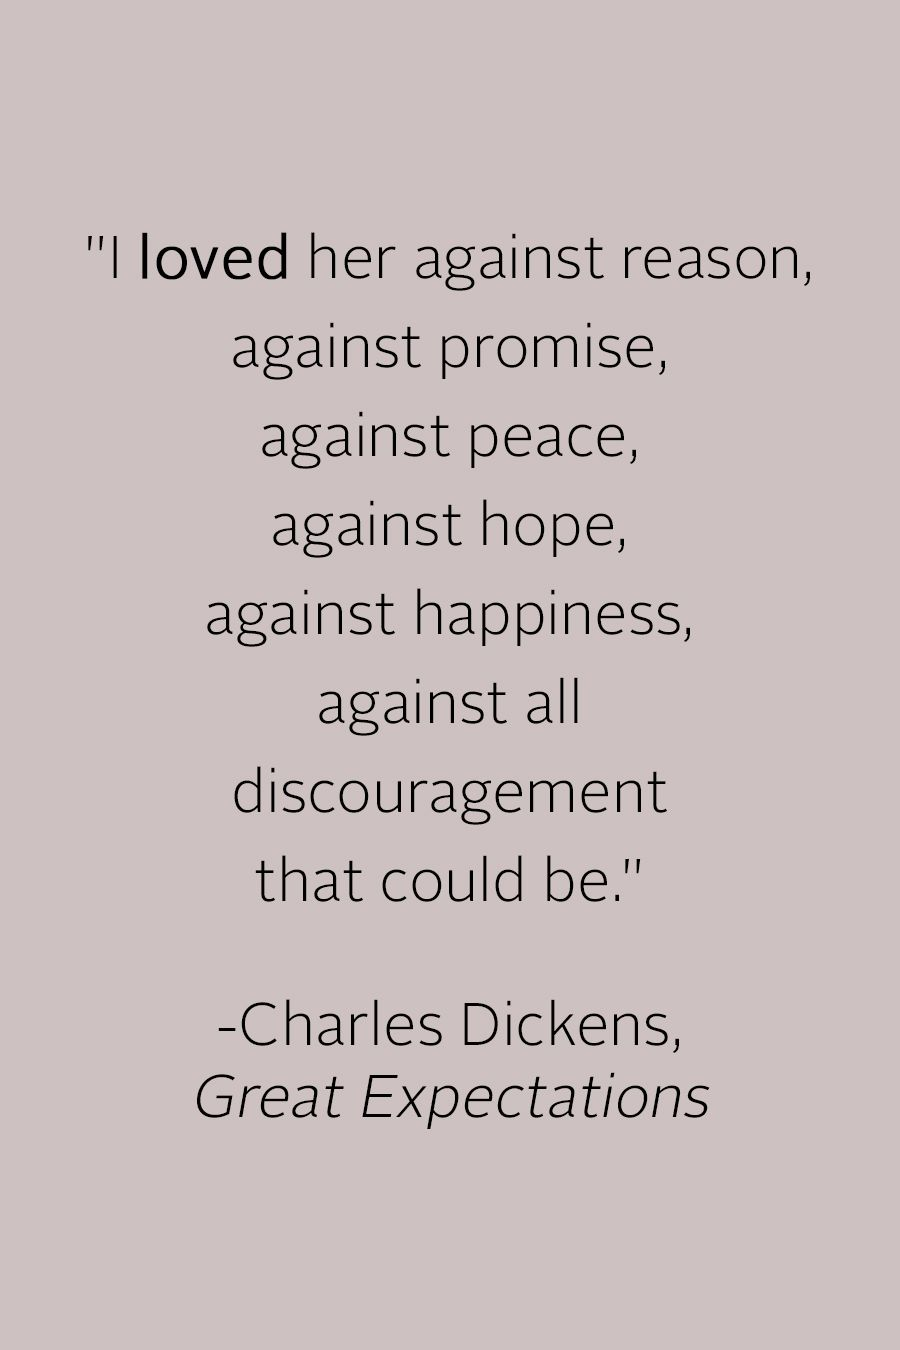 Best Quotes From Books About Love : quotes, books, about, Heart-Wrenching, Quotes, Literature, Literary, Quotes,, Classic,